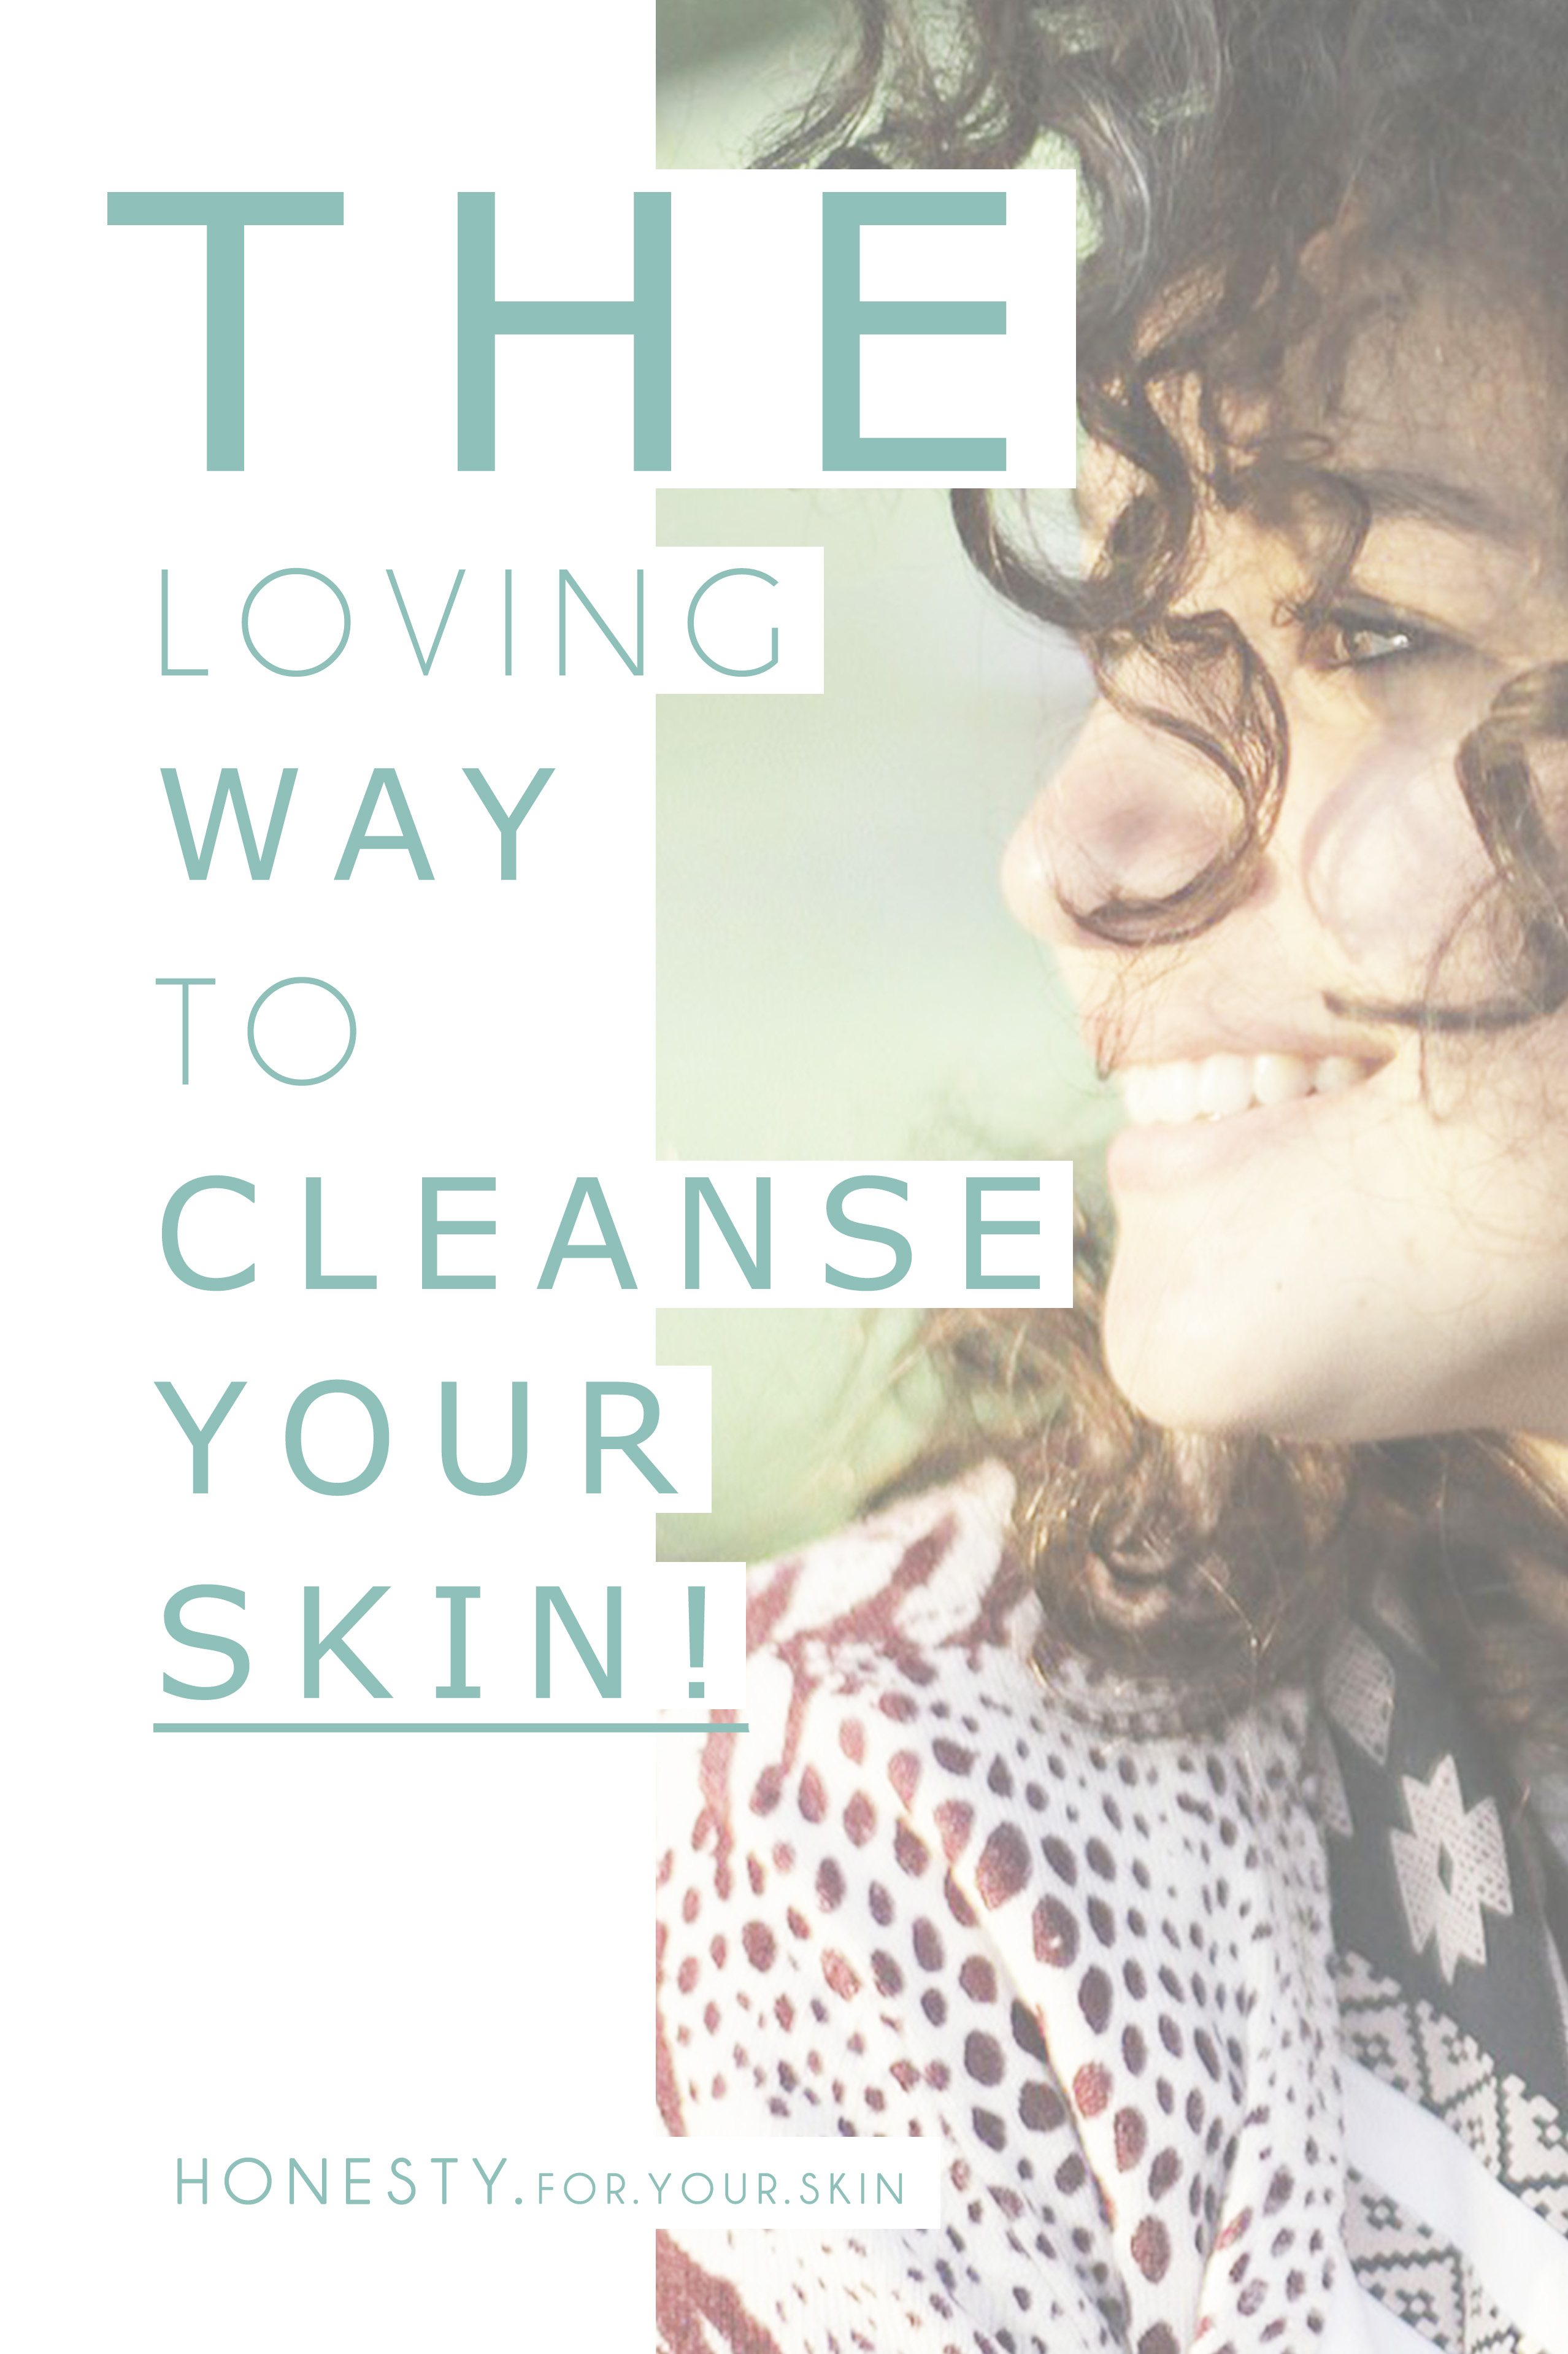 A SUPER skin loving way to cleanse your skin. Say GOODBYE to face tightness and oh hello super glowy skin!